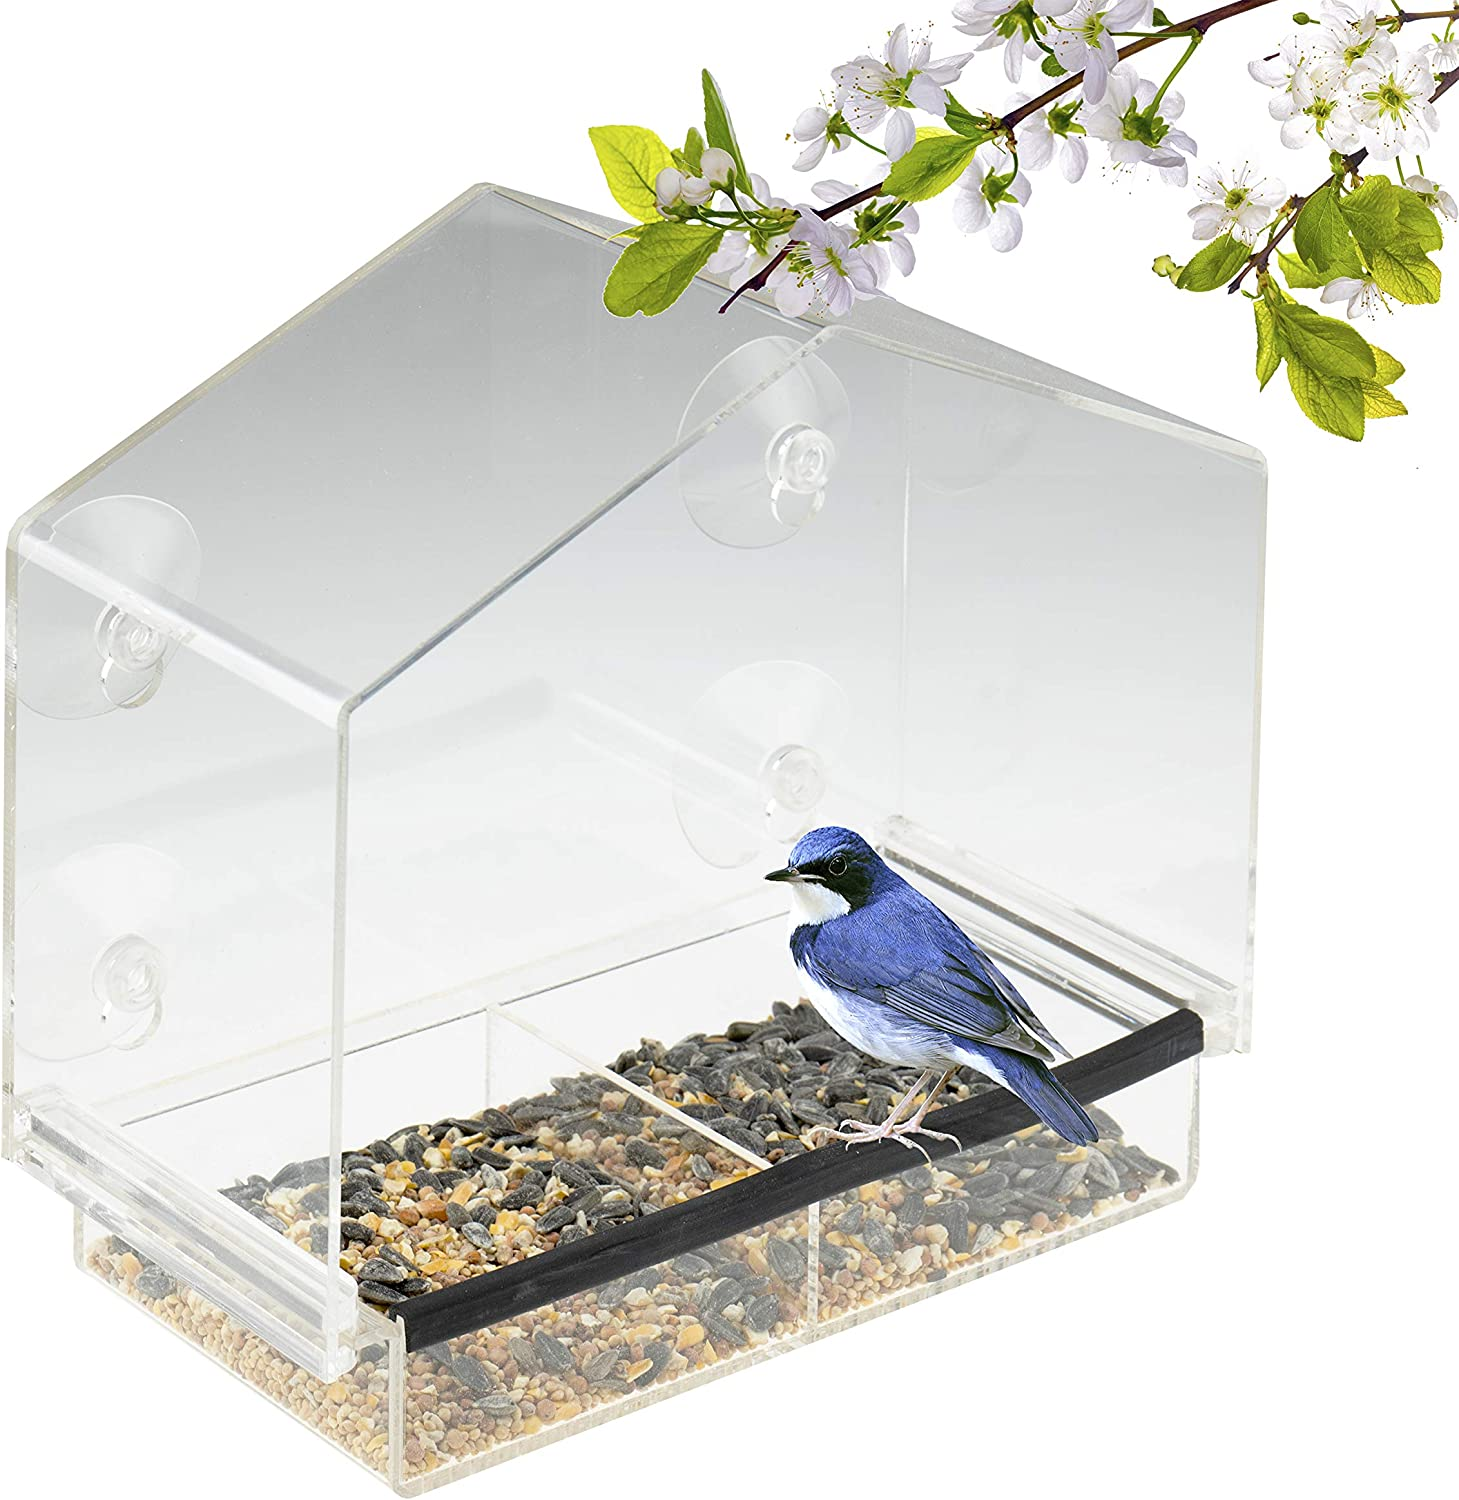 One of the most unique gift ideas for women over 40 is a bird feeder. If your loved one has a house garden then this specific gift will be perfect for her. She will smile whenever she looks at it.